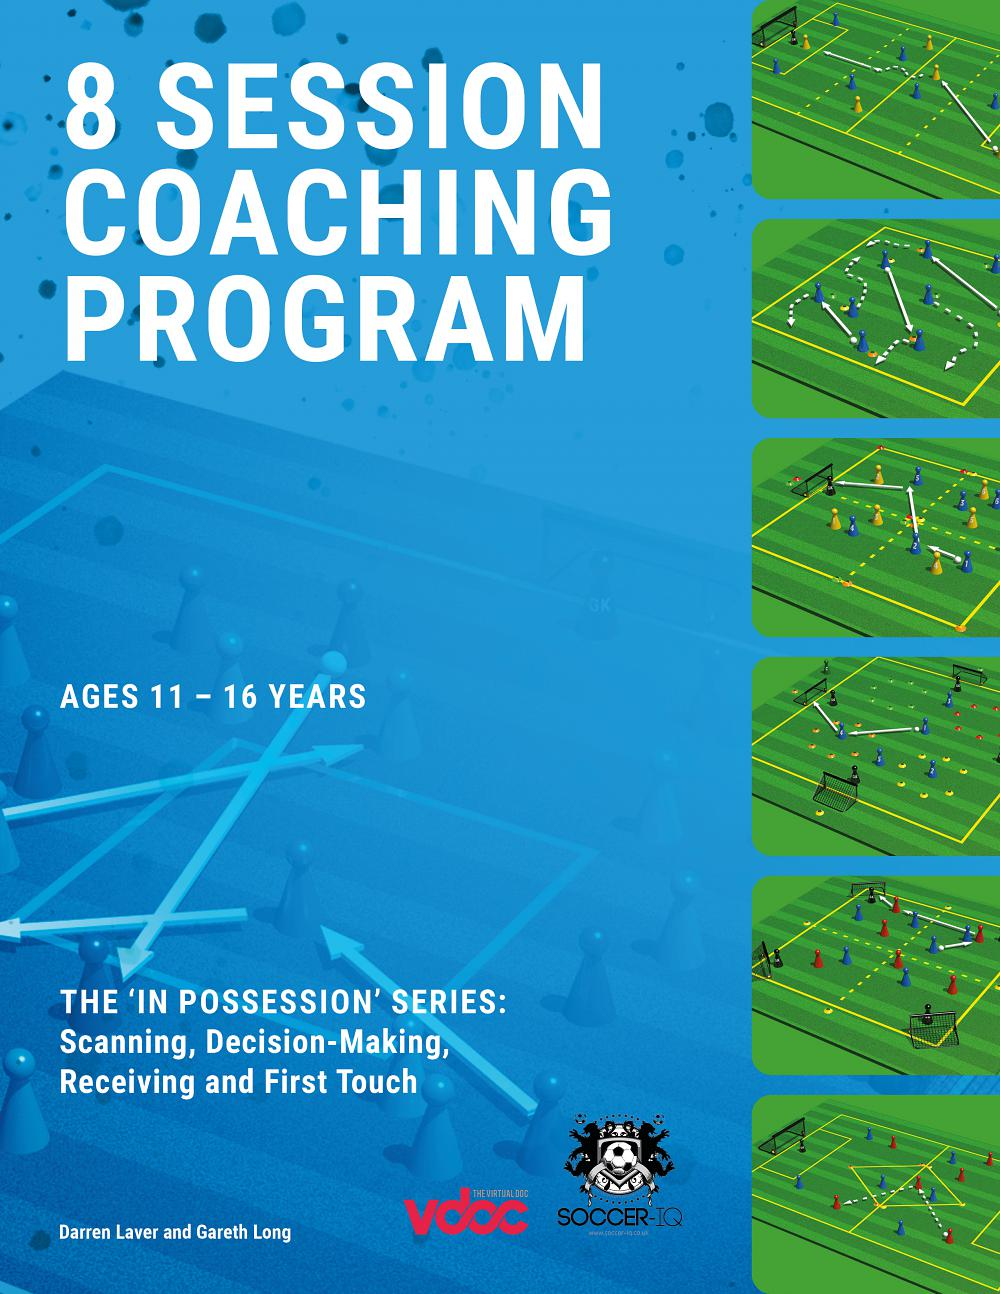 Youth Soccer Training 8 Session Program: The 'In Possession' Series: Scanning, Decision-Making, Receiving and First Touch